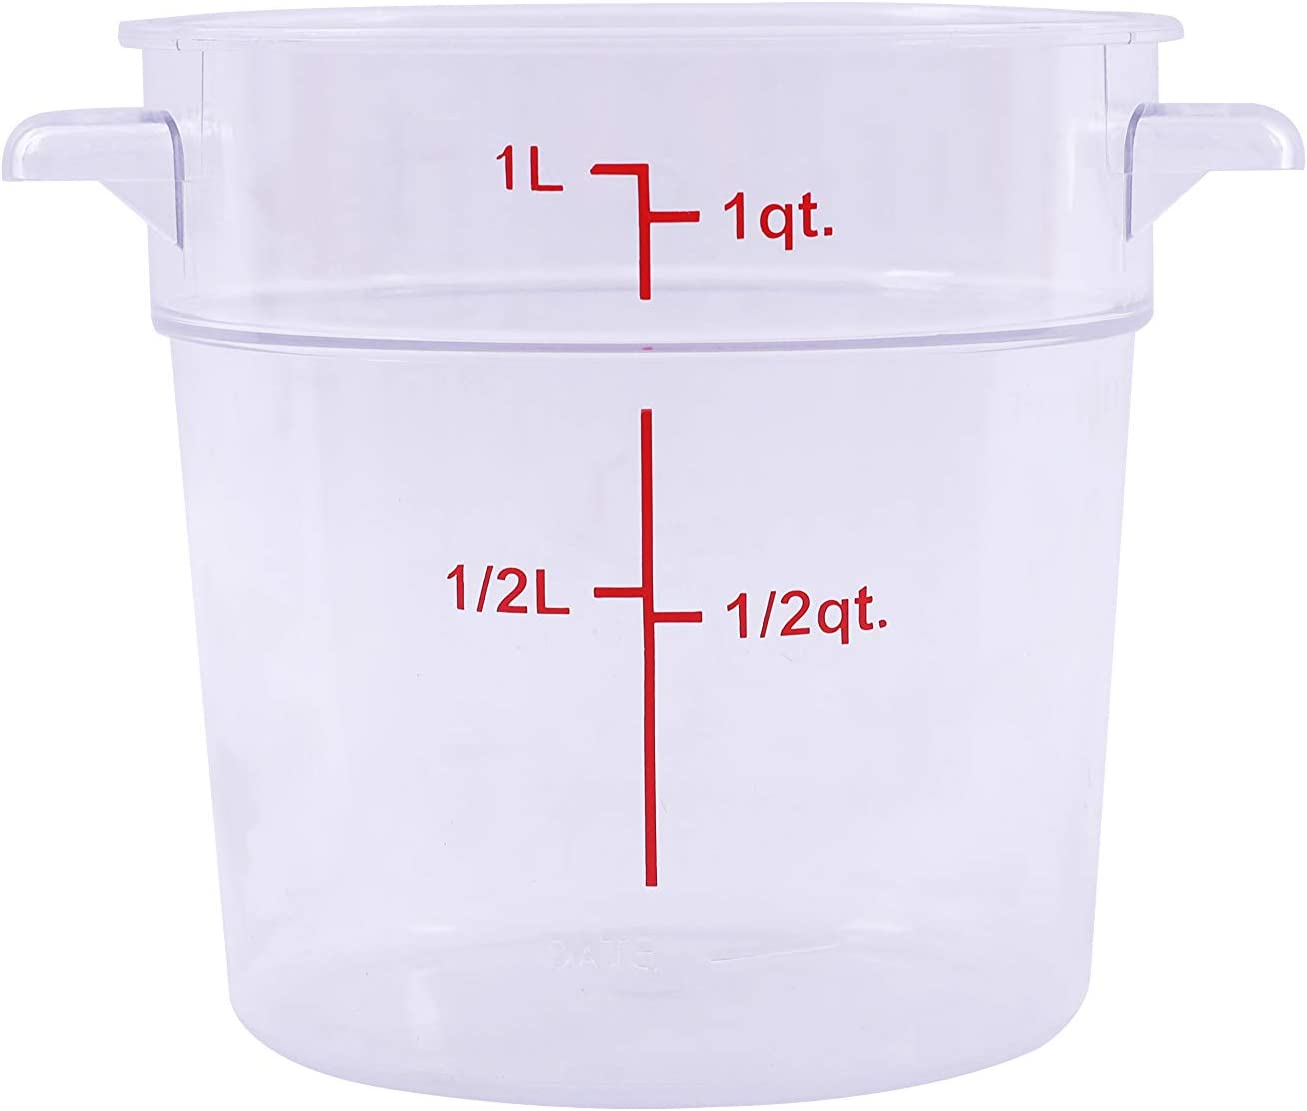 Caspian 1 Qt. Clear Round Polycarbonate Food Storage Container with Red Gradations Plastic Space Saving for Home or Commercial Kitchen, Sous Vide, Food Prep and Storage, 1 Piece